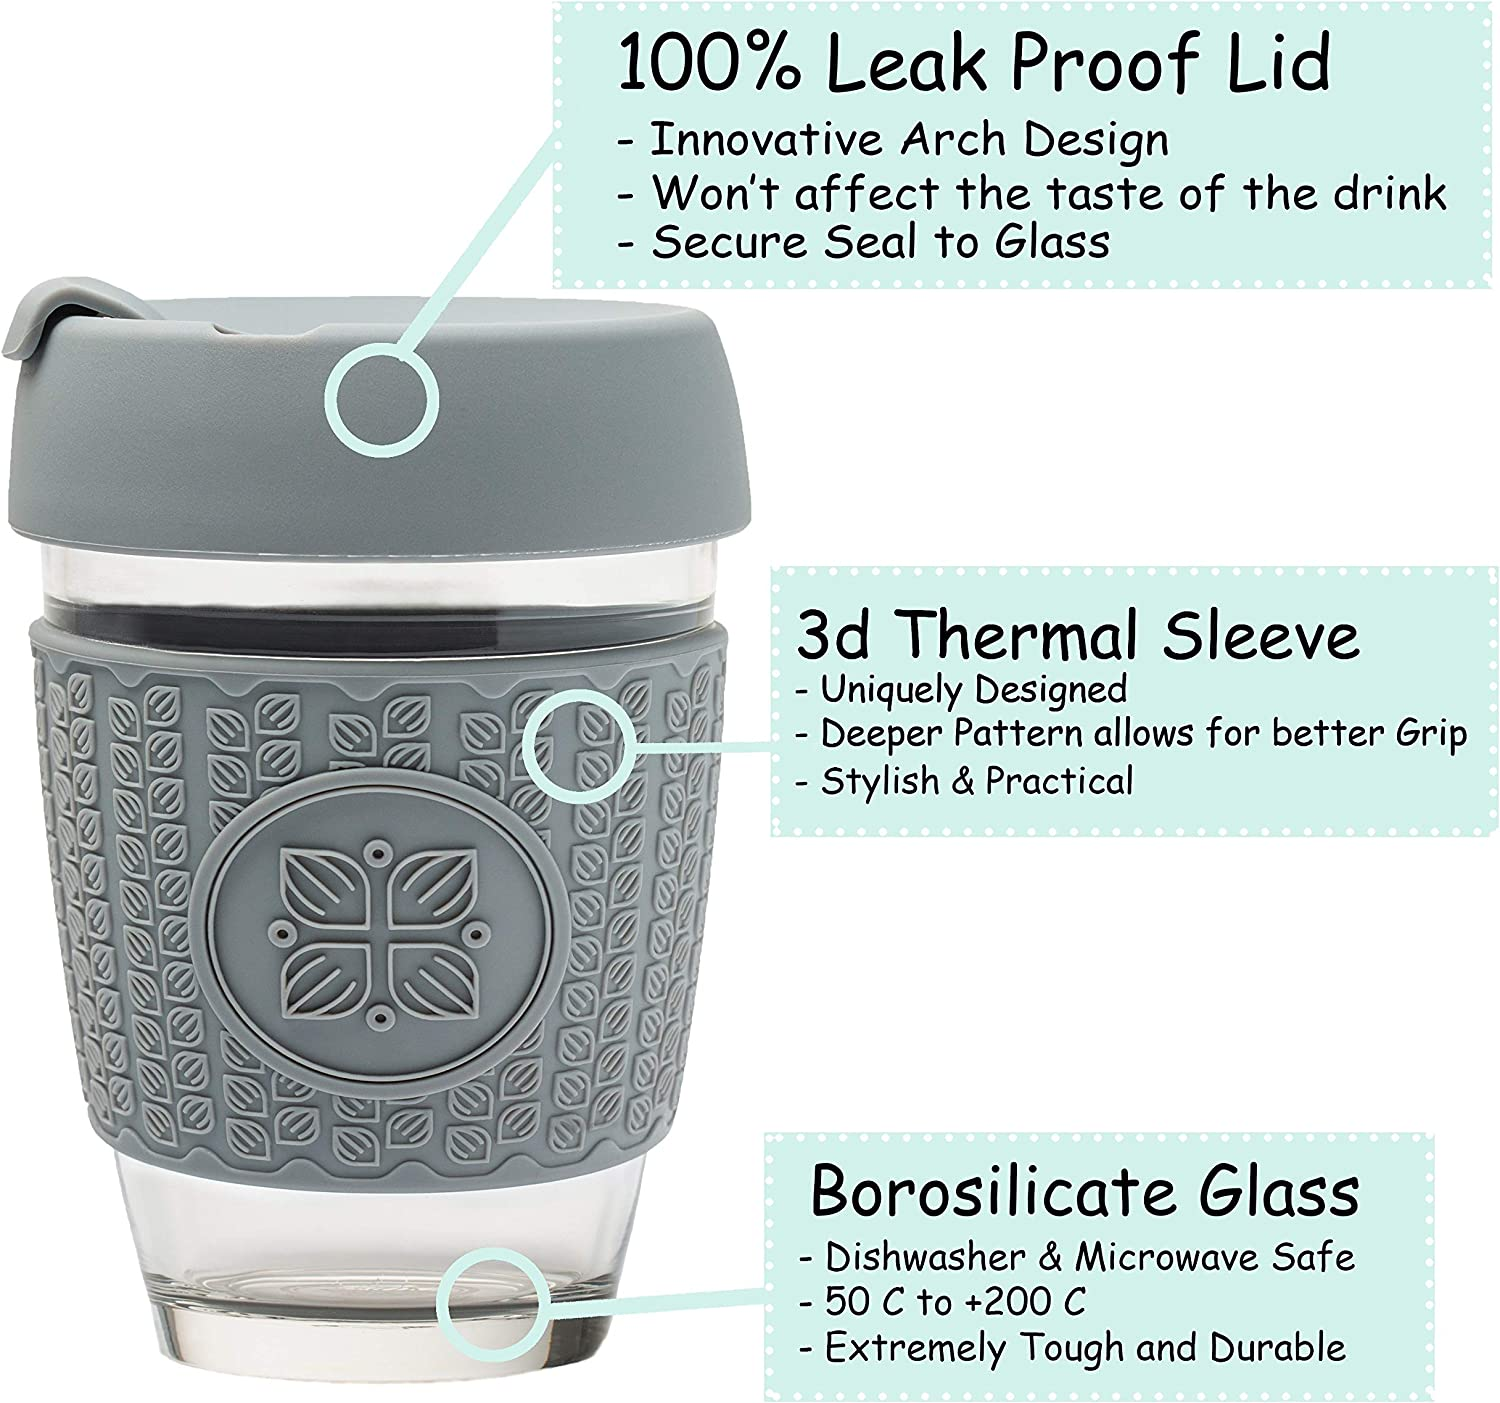 High Quality Borosilicate Glass Thickened 3D Thermal Sleeve 12oz Barrister Friendly Eco-Friendly Travel Mug Grey Leek Proof Lid FUNK MY WORLD Reusable Coffee Cups